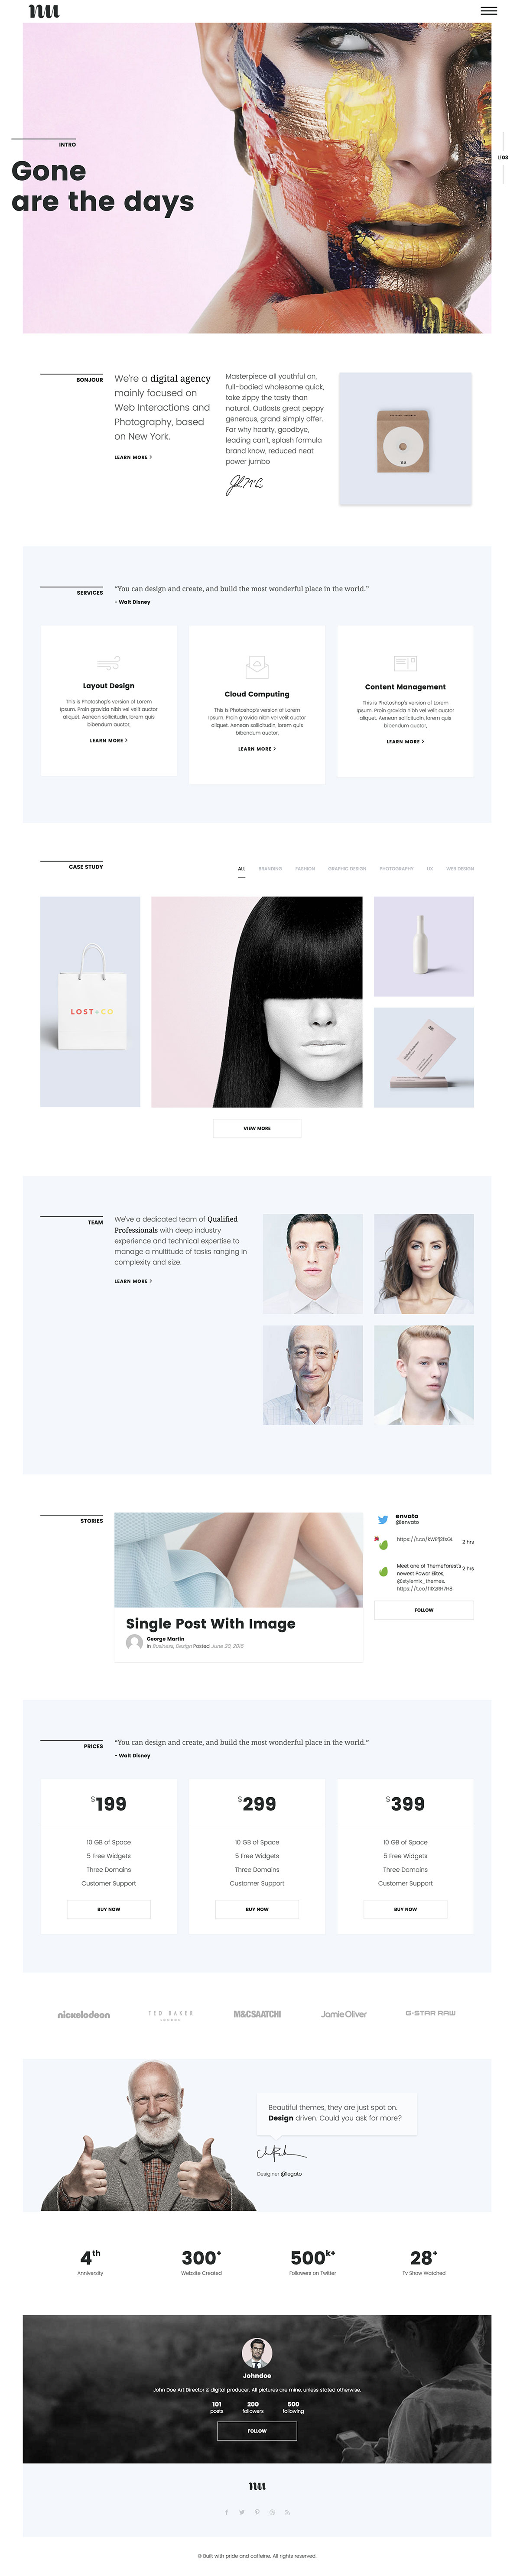 Adios - Portfolio WordPress Theme for Artists, Agencies, Freelancers